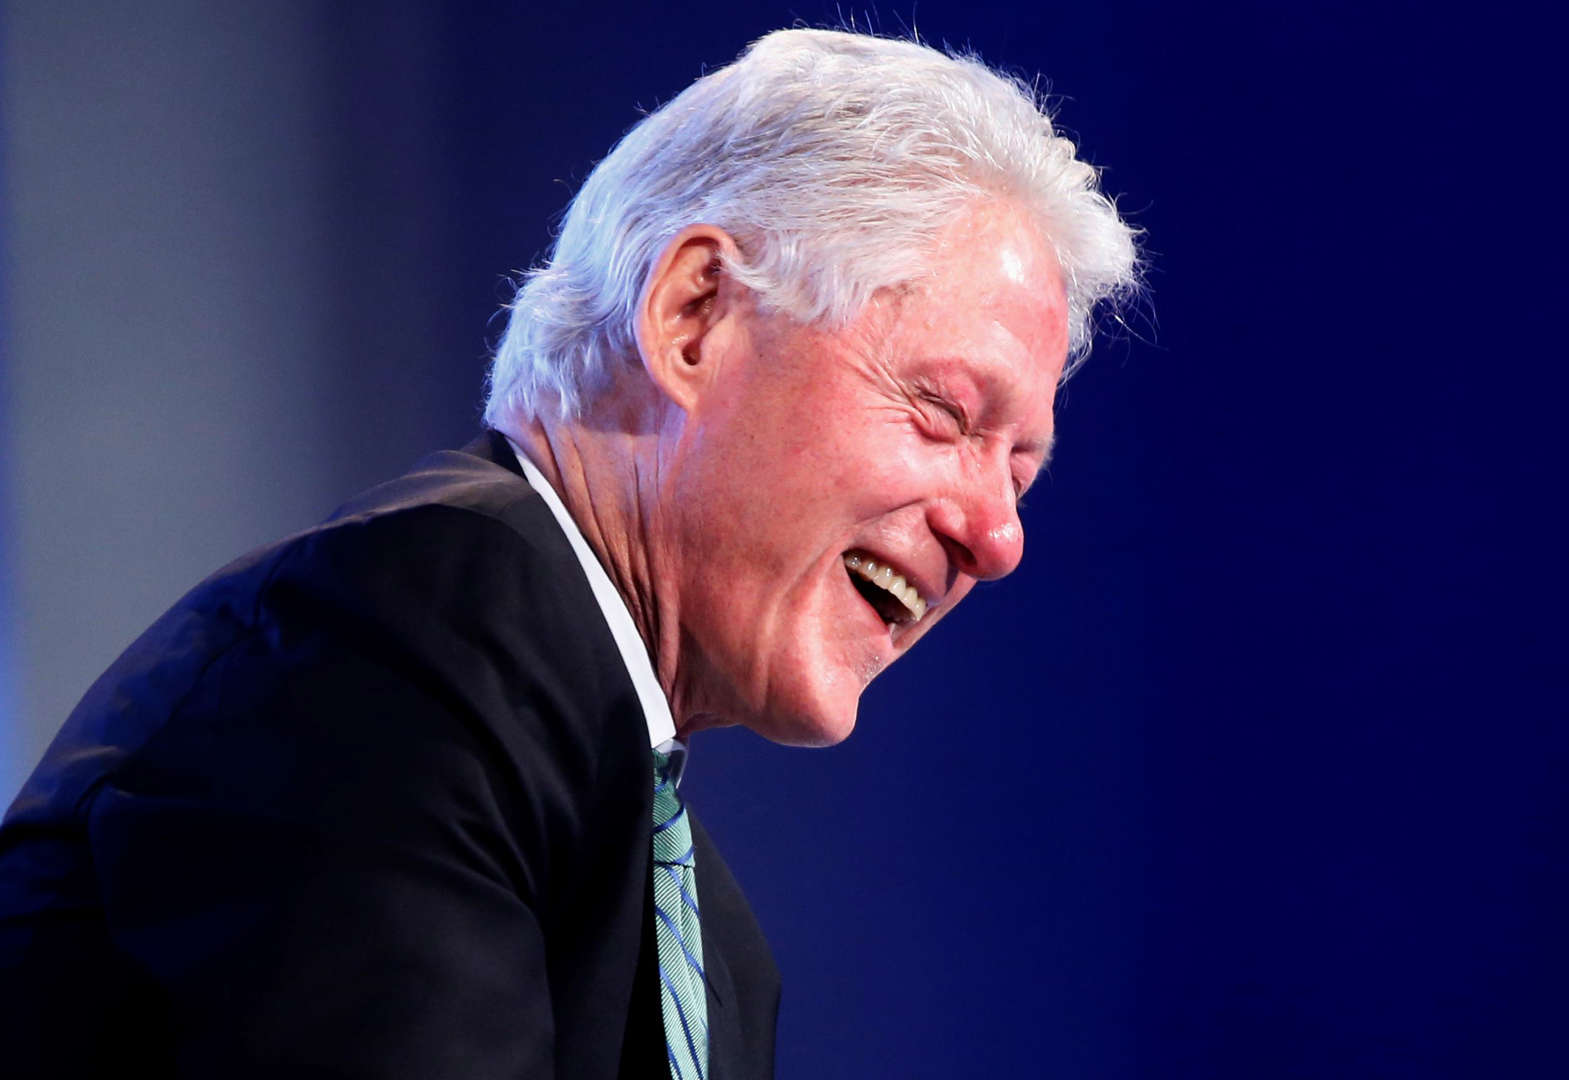 """<p>Just like a hot, juicy sex scandal, President Bill Clinton loved his hot and greasy <strong>cheeseburgers</strong>. </p><p>Adorned with lettuce, tomato, mayonnaise, pickles and onions, his love for burgers was even <a  data-cke-saved-href=""""http://www.foodandwine.com/slideshows/presidential-food-obsessions/4"""" href=""""http://www.foodandwine.com/slideshows/presidential-food-obsessions/4"""">portrayed</a> on an episode of Saturday Night Live. After health complications, he decided he would become a <a  data-cke-saved-href=""""http://www.foodandwine.com/slideshows/presidential-food-obsessions/4"""" href=""""http://www.foodandwine.com/slideshows/presidential-food-obsessions/4"""">vegan</a> in 2011. </p><p>Source: <a  data-cke-saved-href=""""http://www.foodandwine.com/slideshows/presidential-food-obsessions/4"""" href=""""http://www.foodandwine.com/slideshows/presidential-food-obsessions/4"""">Food and Wine</a></p>"""